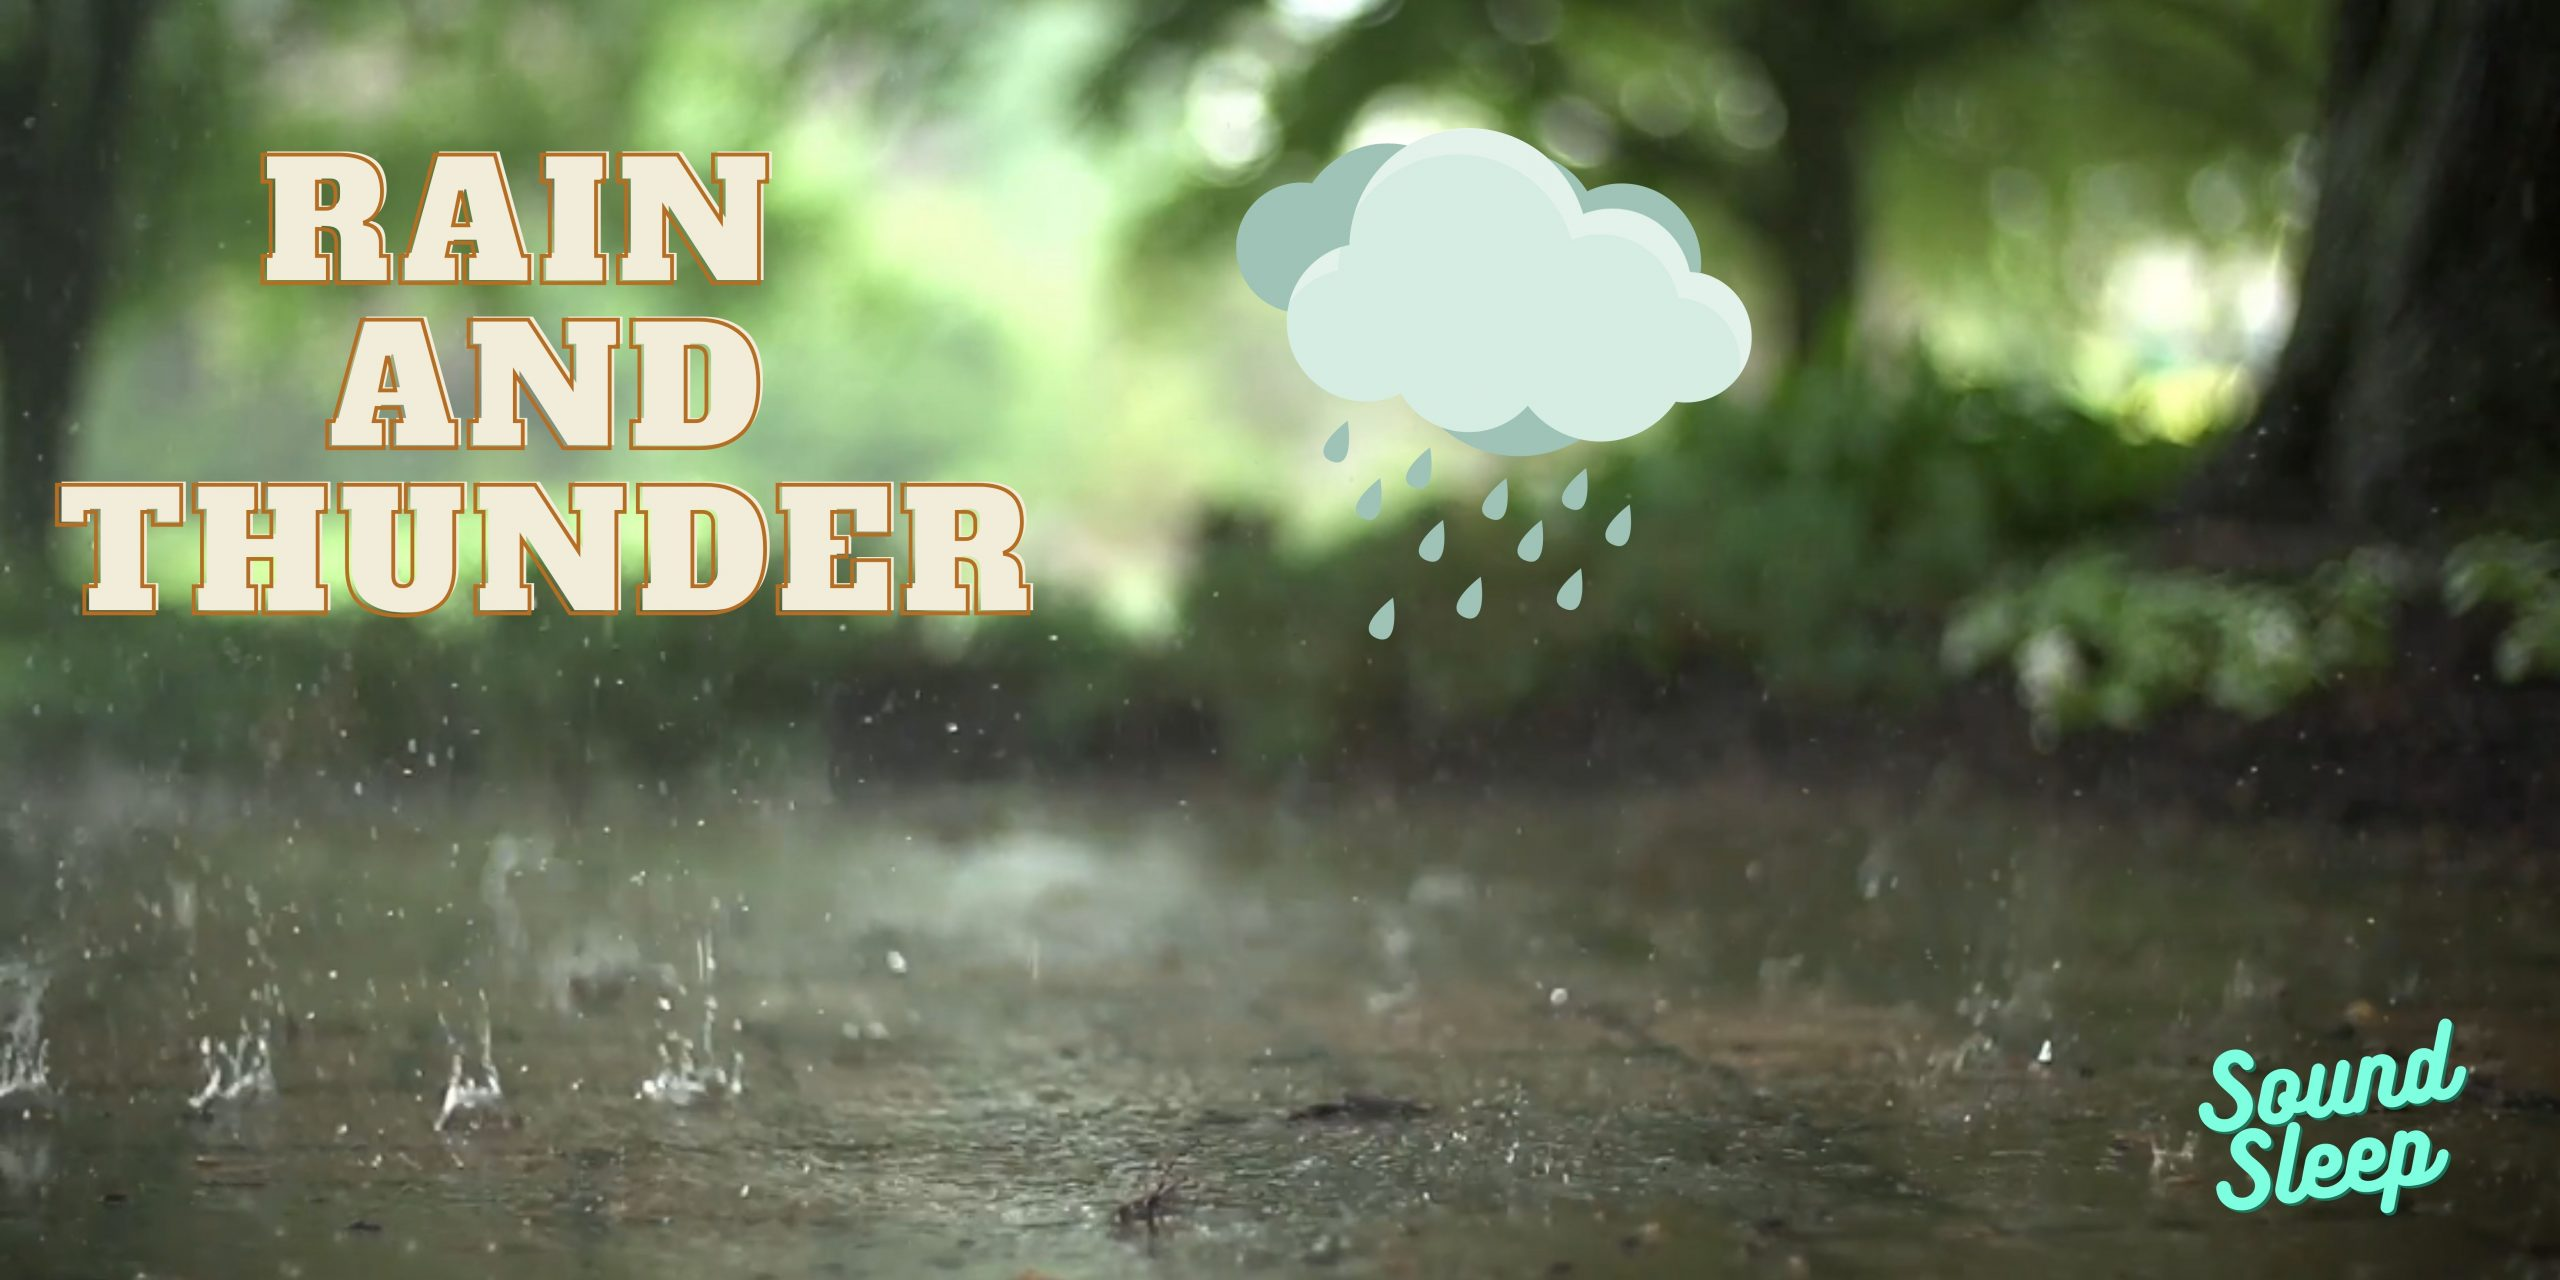 Sleep With Nature Heavy Rain Sounds And Gentle Thunder